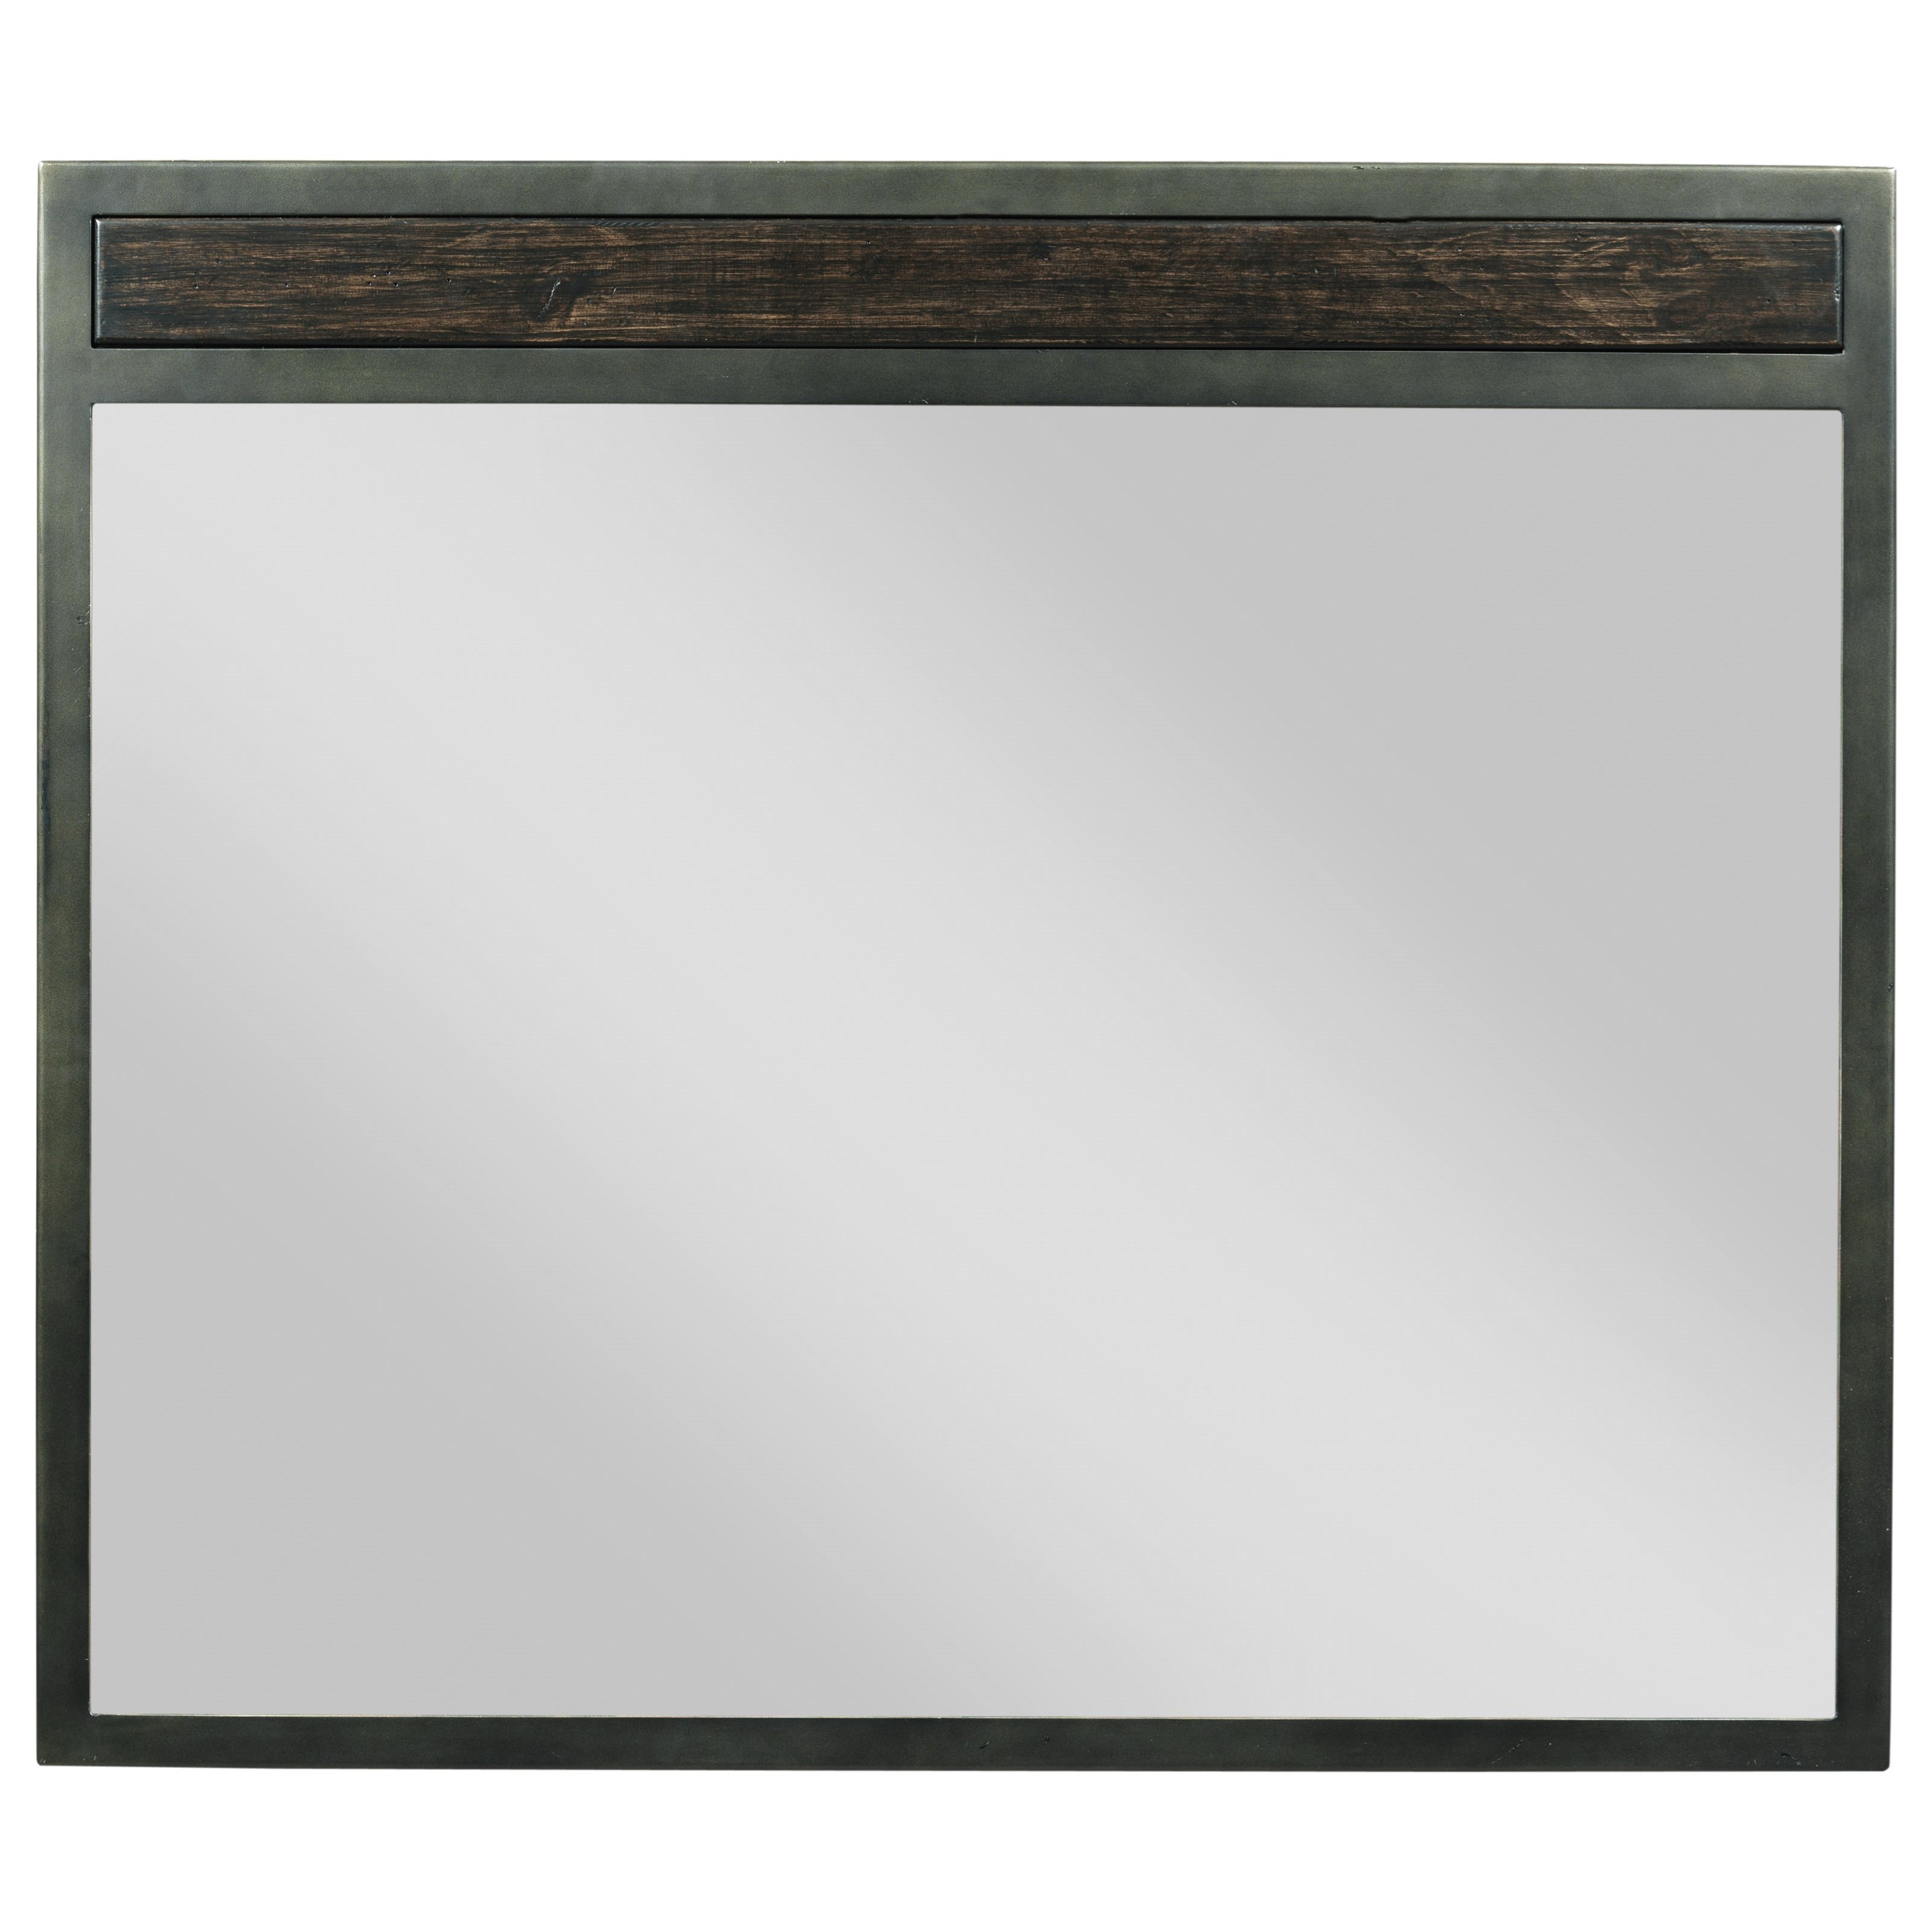 Plank Road Shelley Mirror                               by Kincaid Furniture at Johnny Janosik